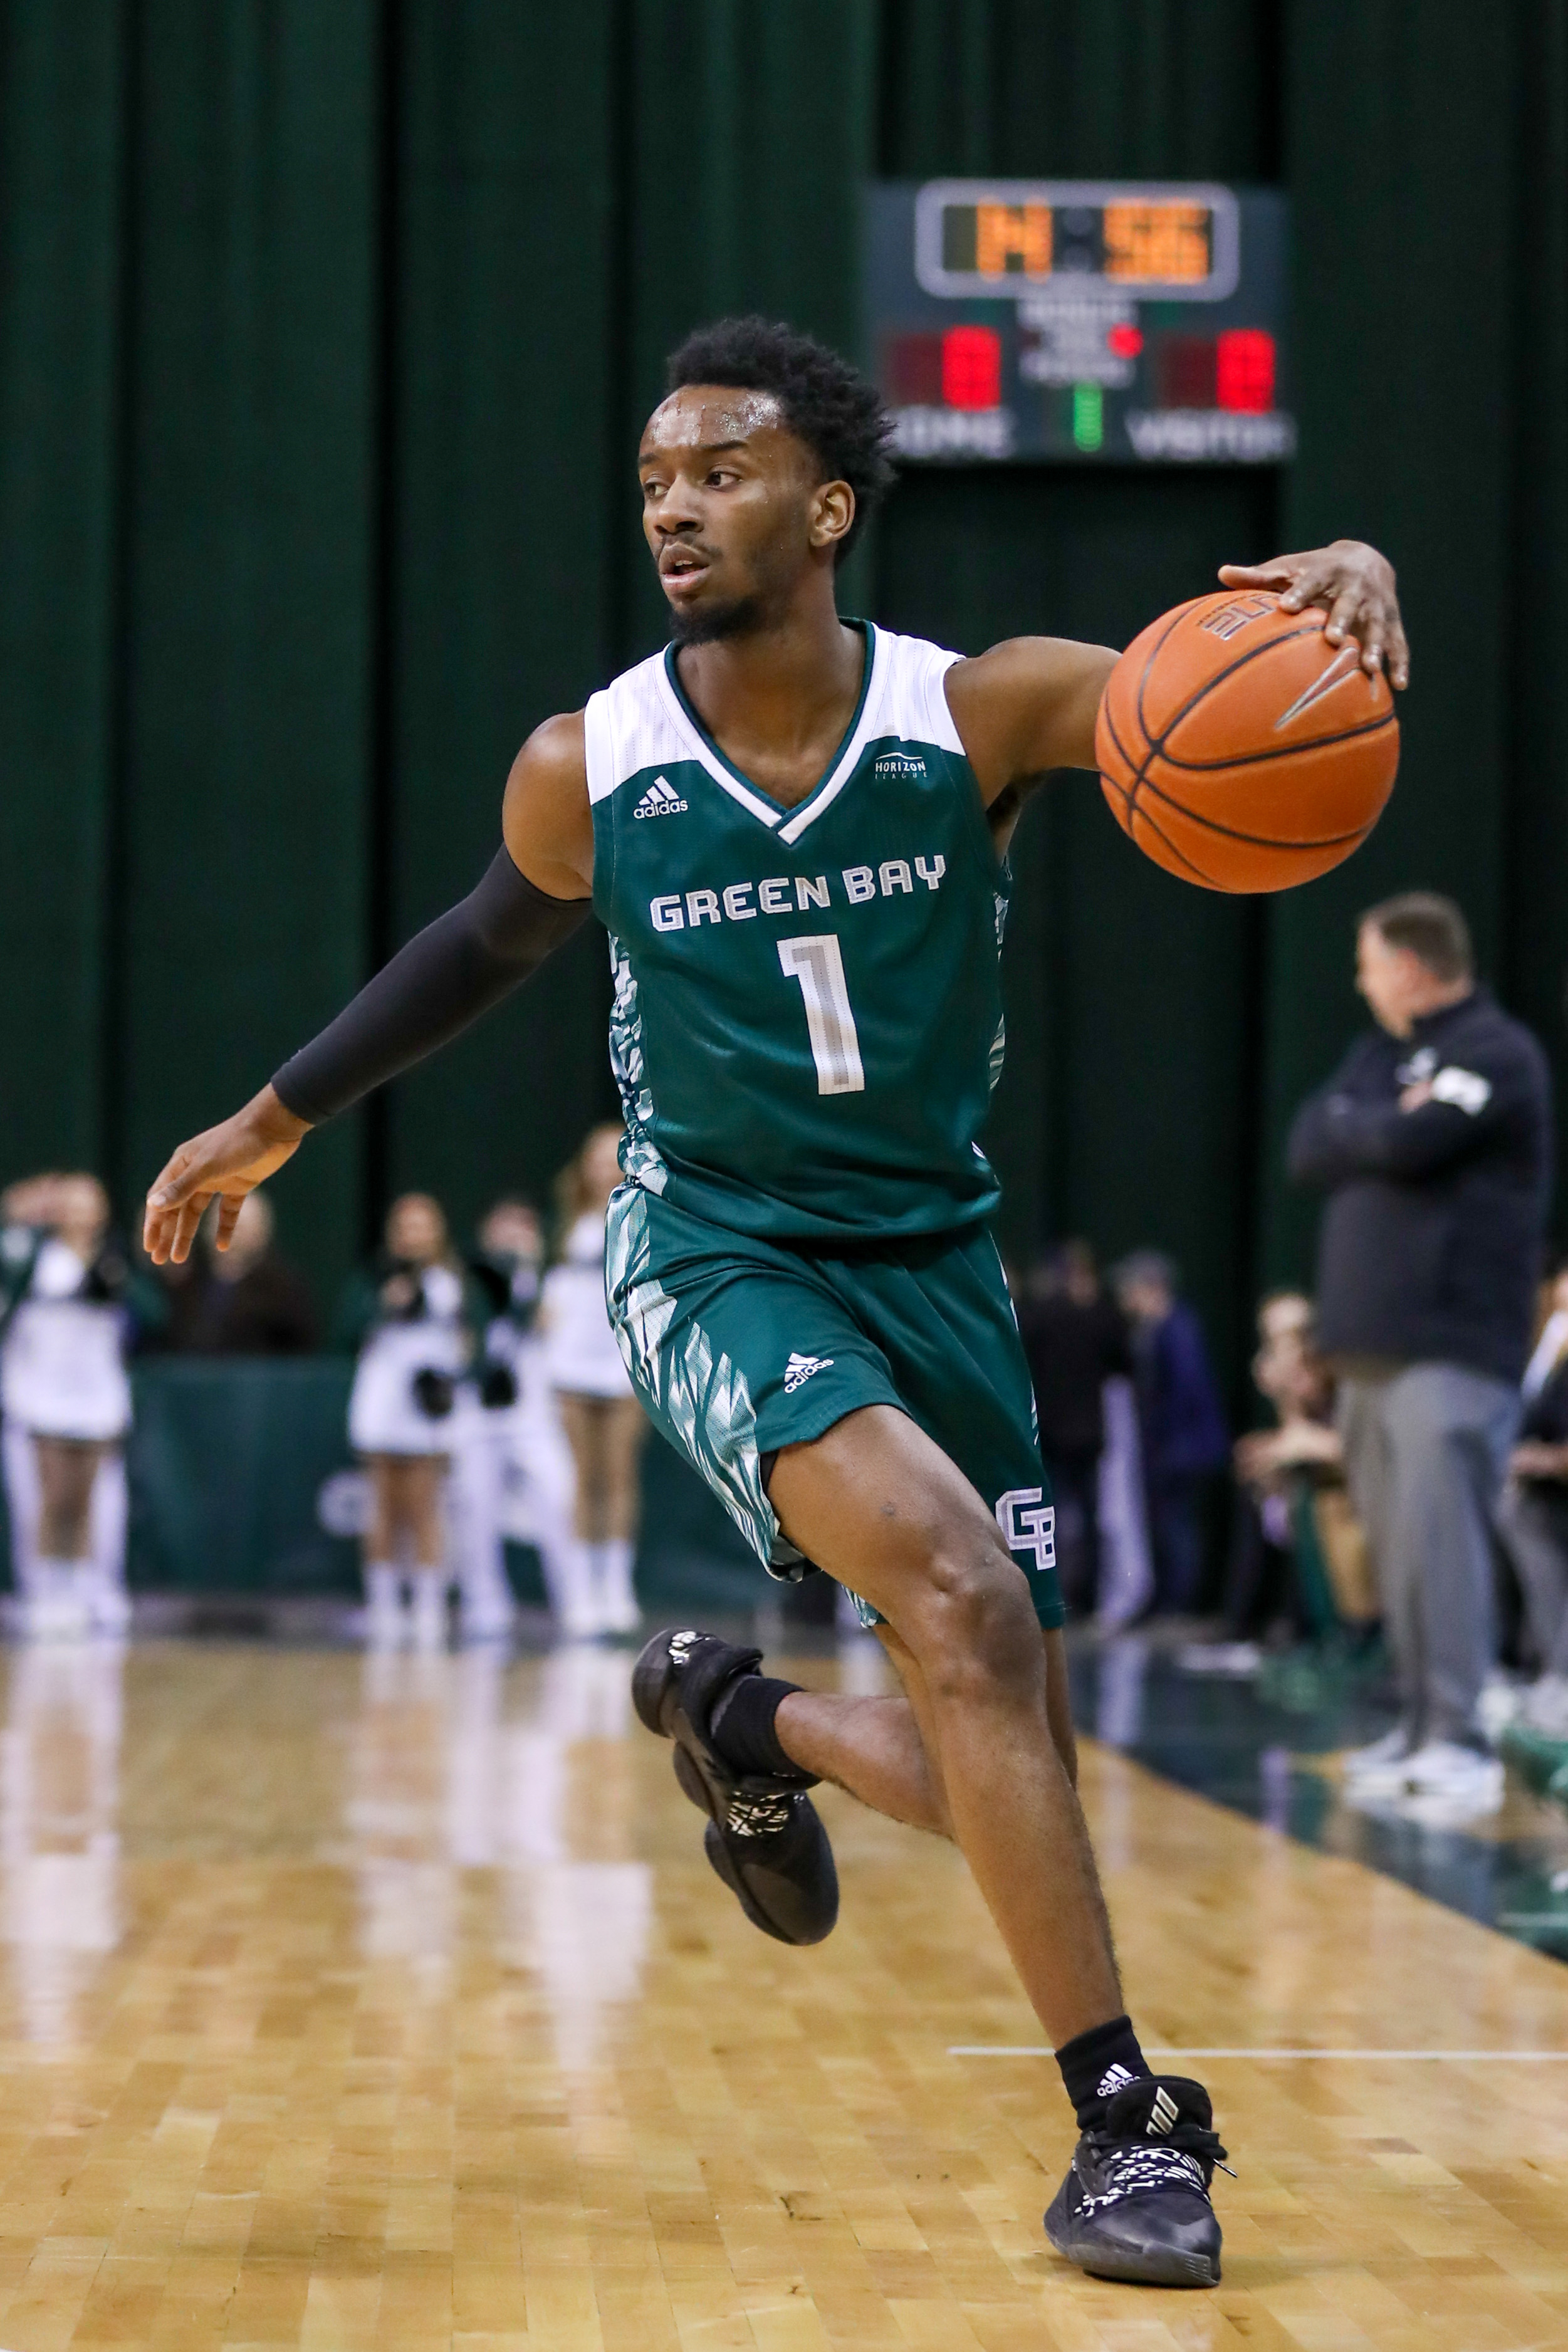 COLLEGE BASKETBALL: JAN 23 Green Bay at Cleveland State